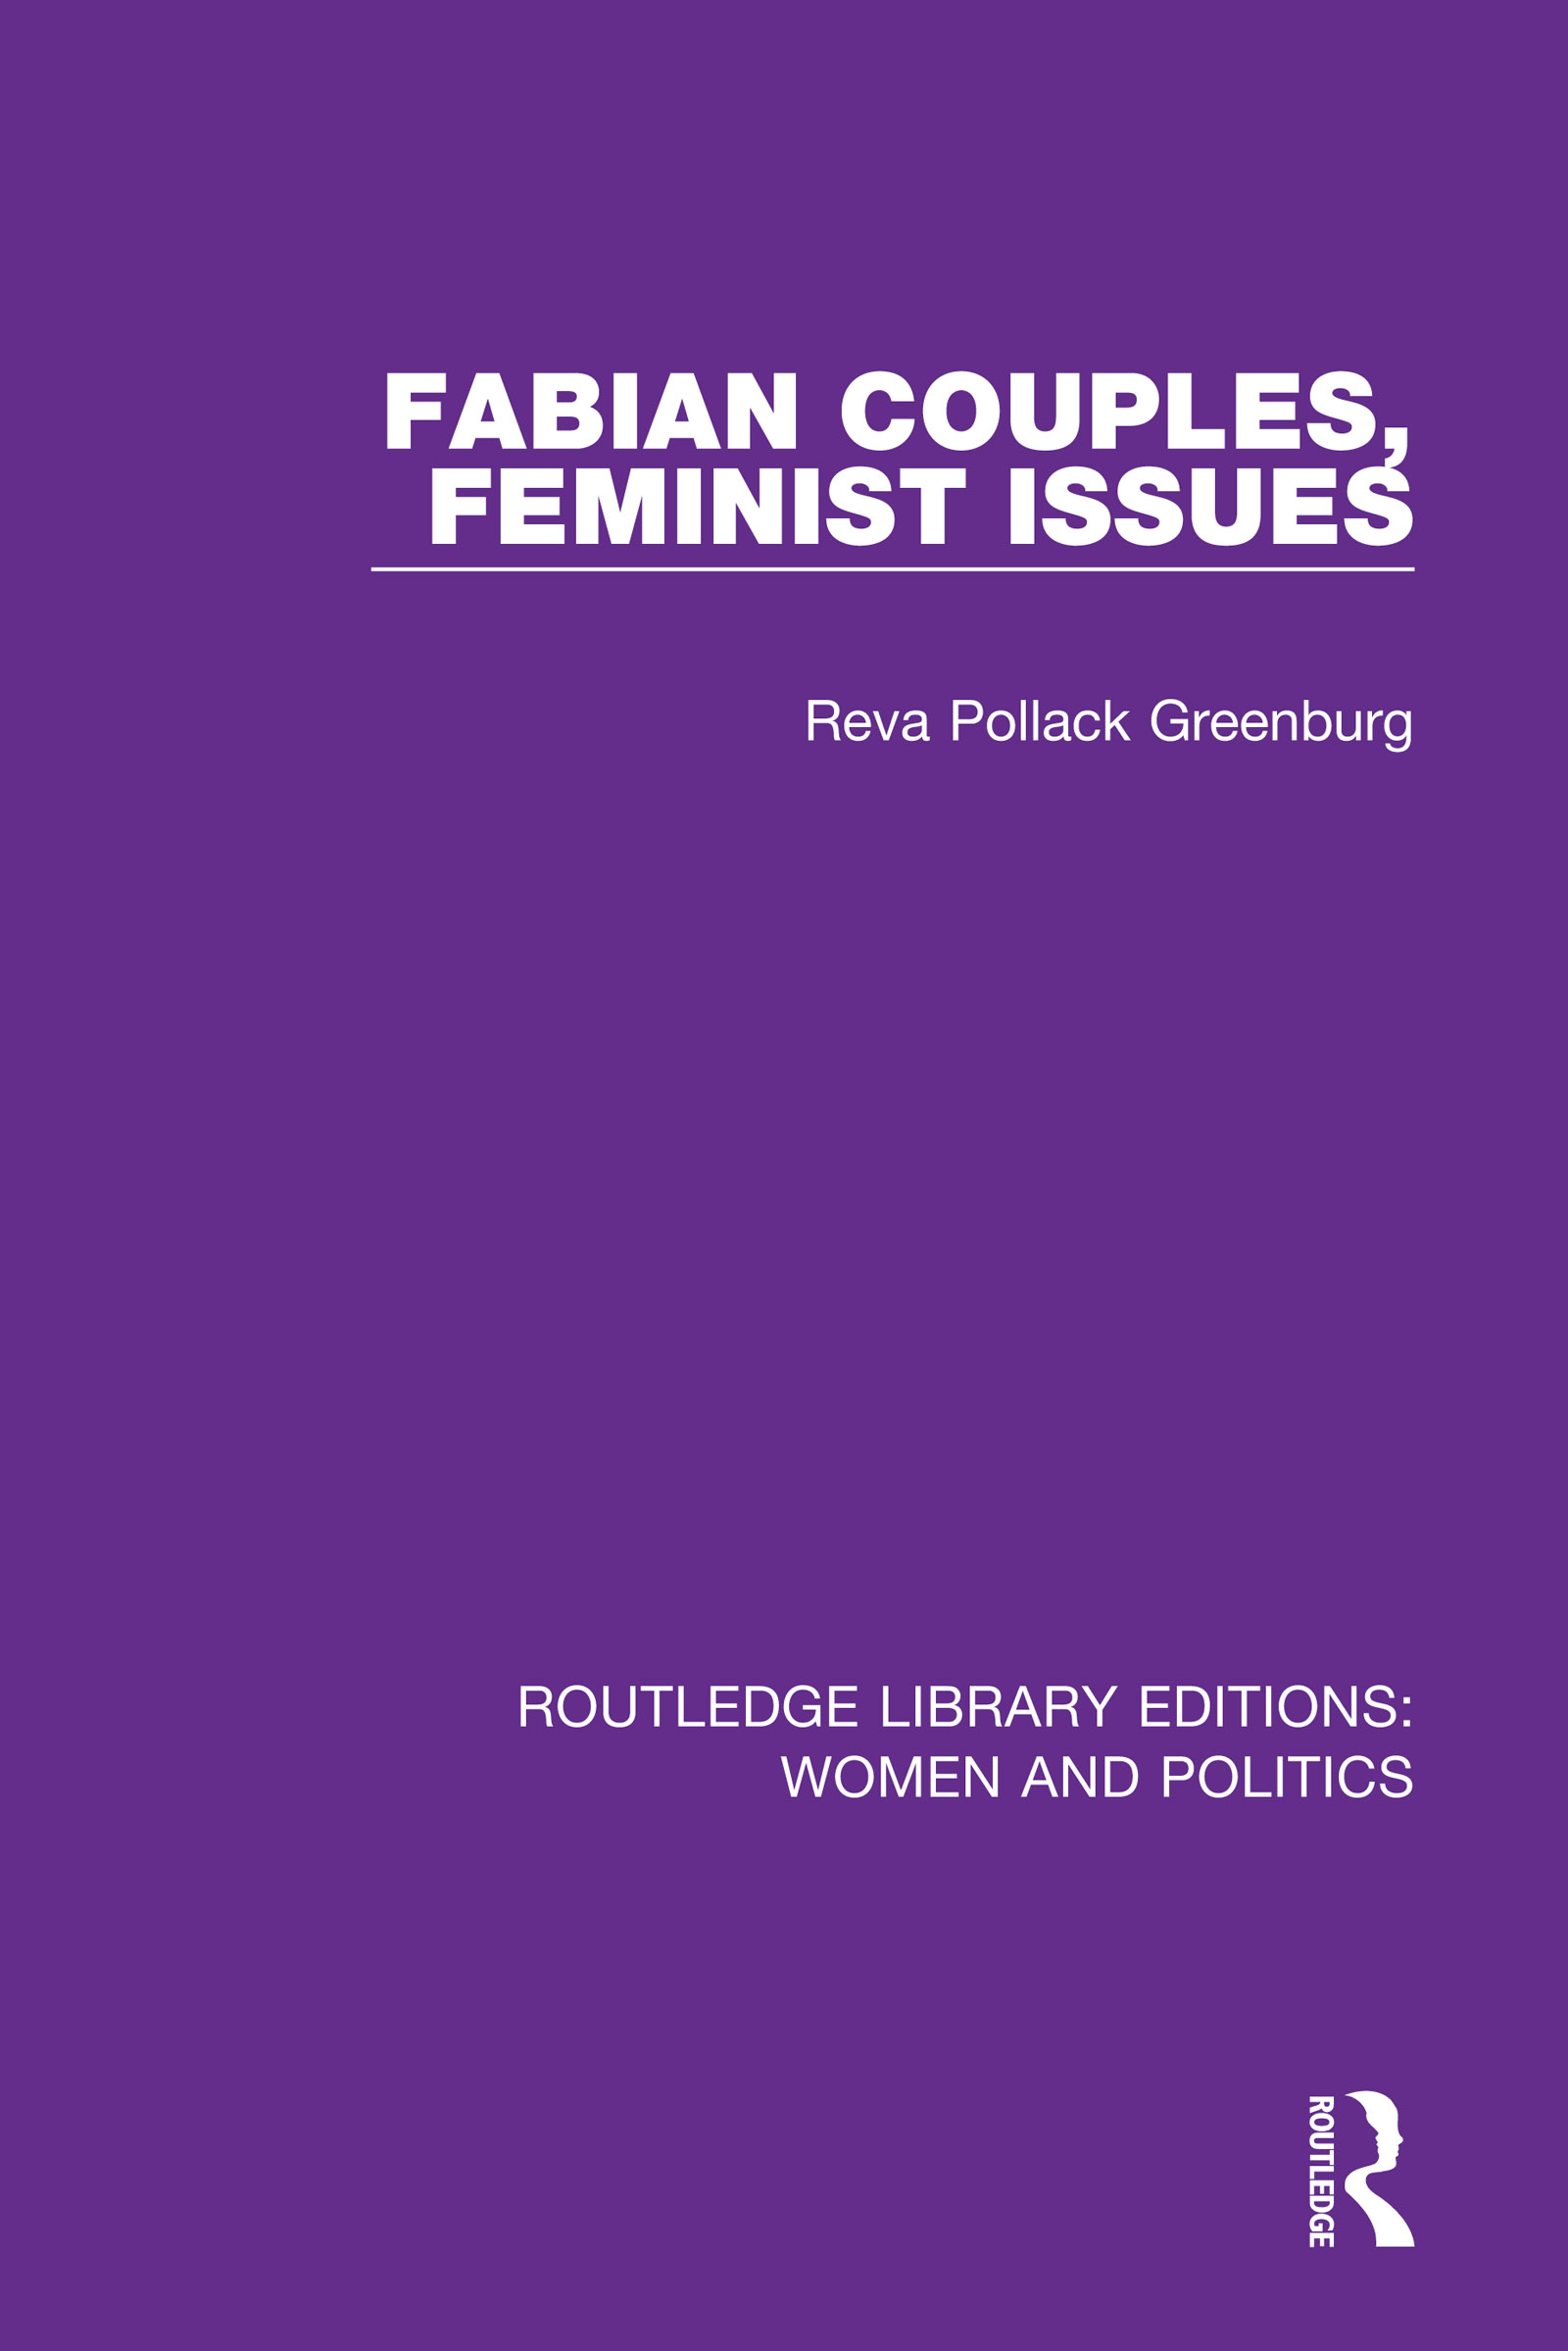 Fabian Couples, Feminist Issues